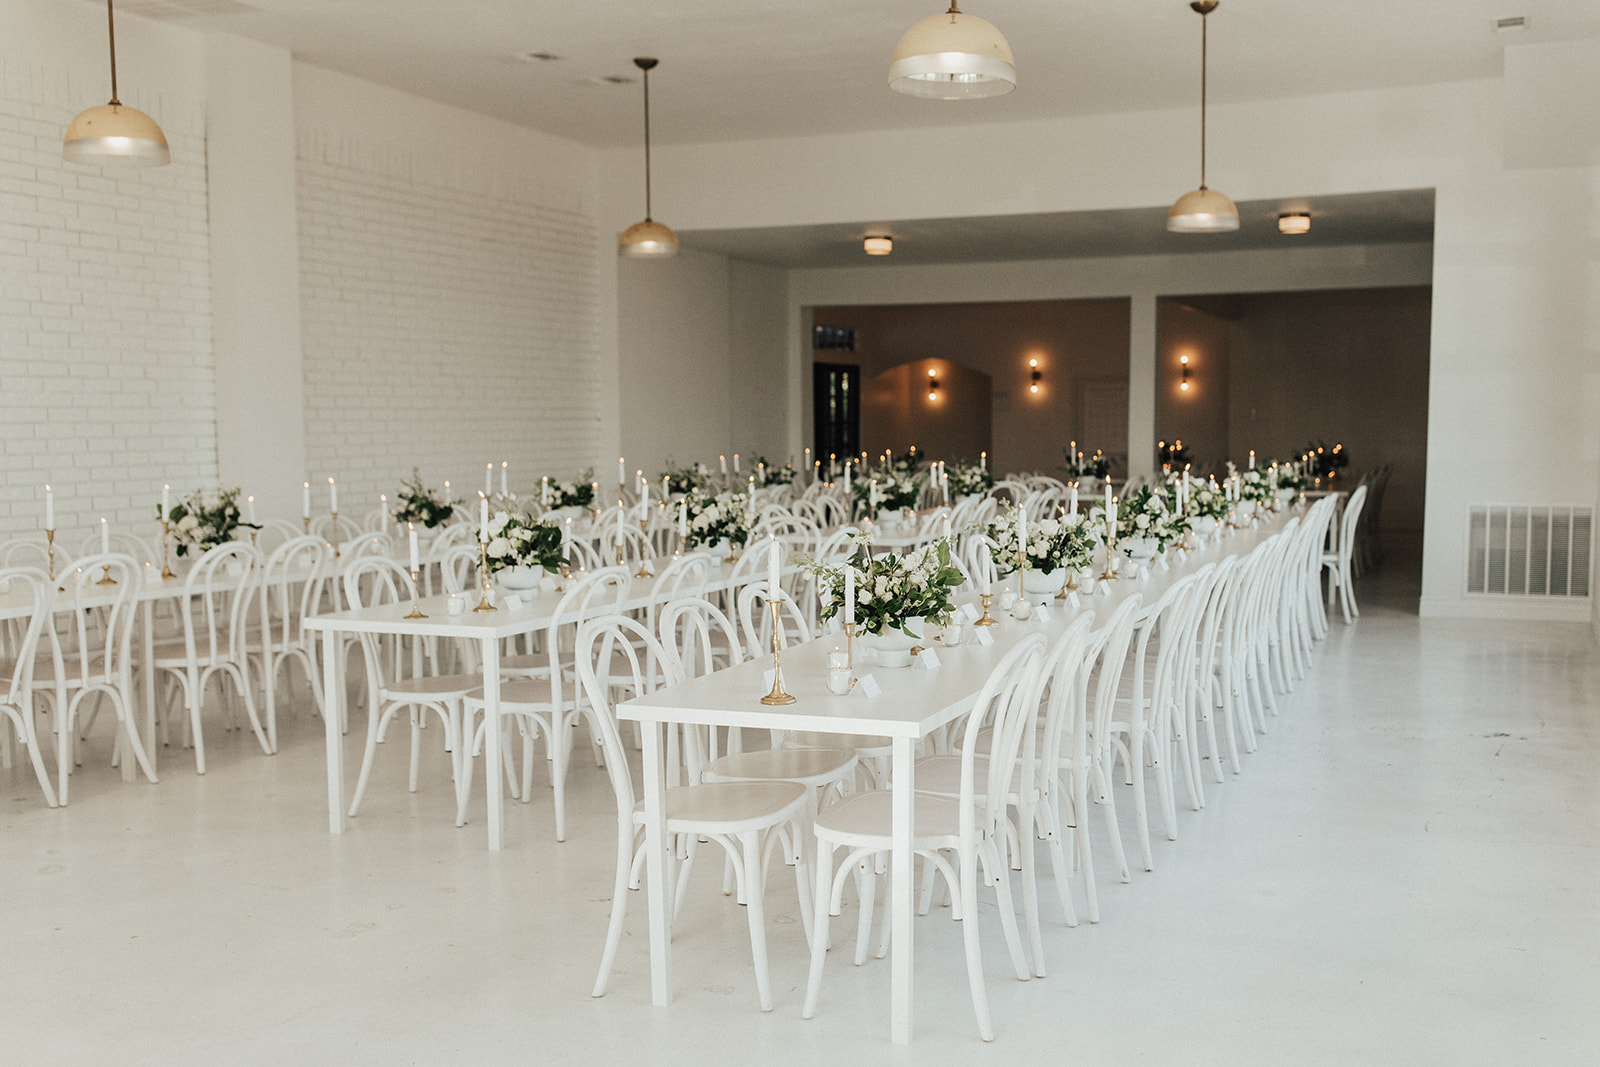 All White Wedding Decor with Greenery at The Emerson